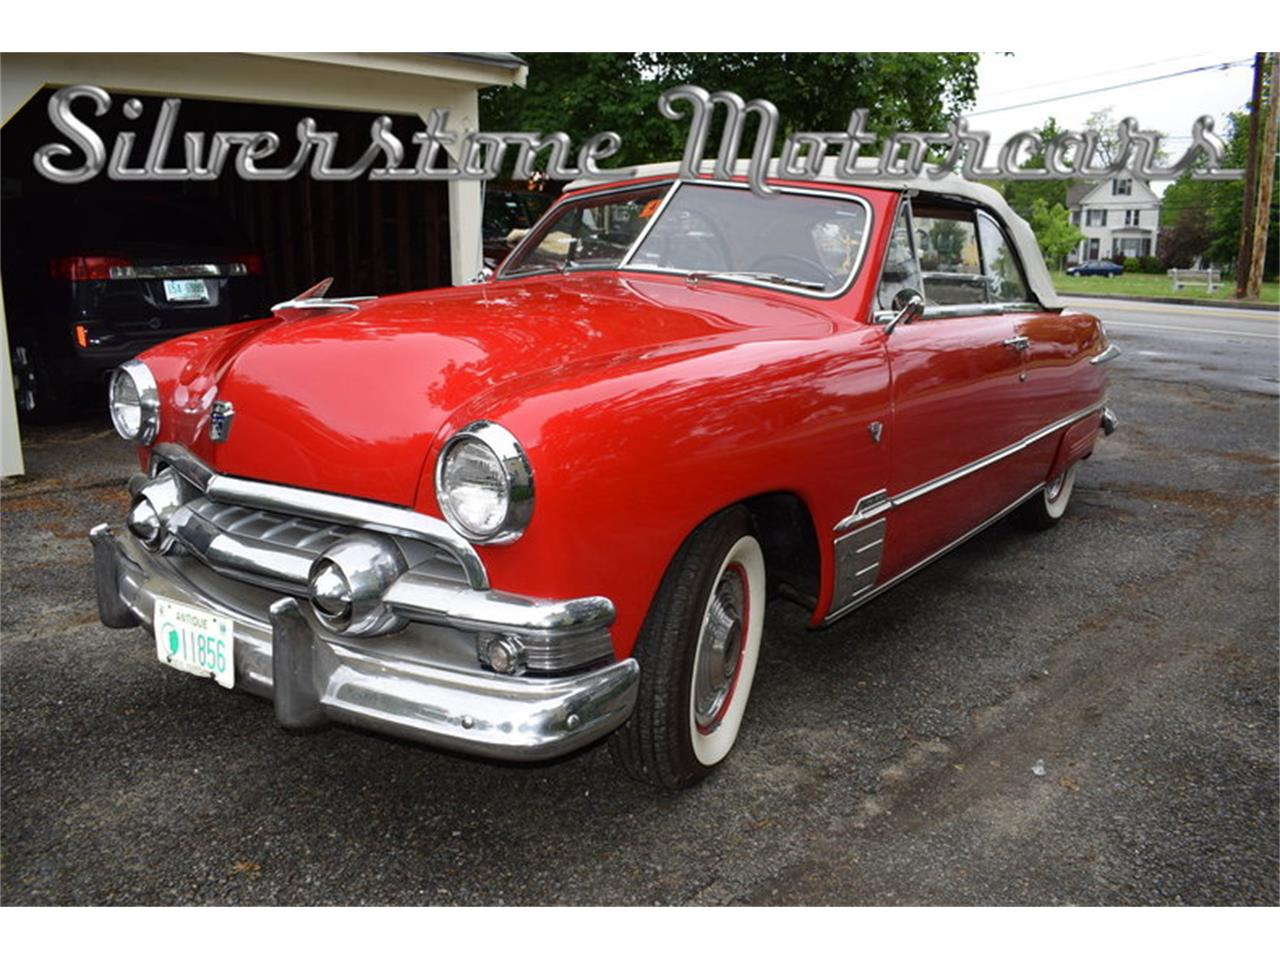 Large Picture of Classic '51 Ford Custom Deluxe located in Massachusetts Offered by Silverstone Motorcars - L79S